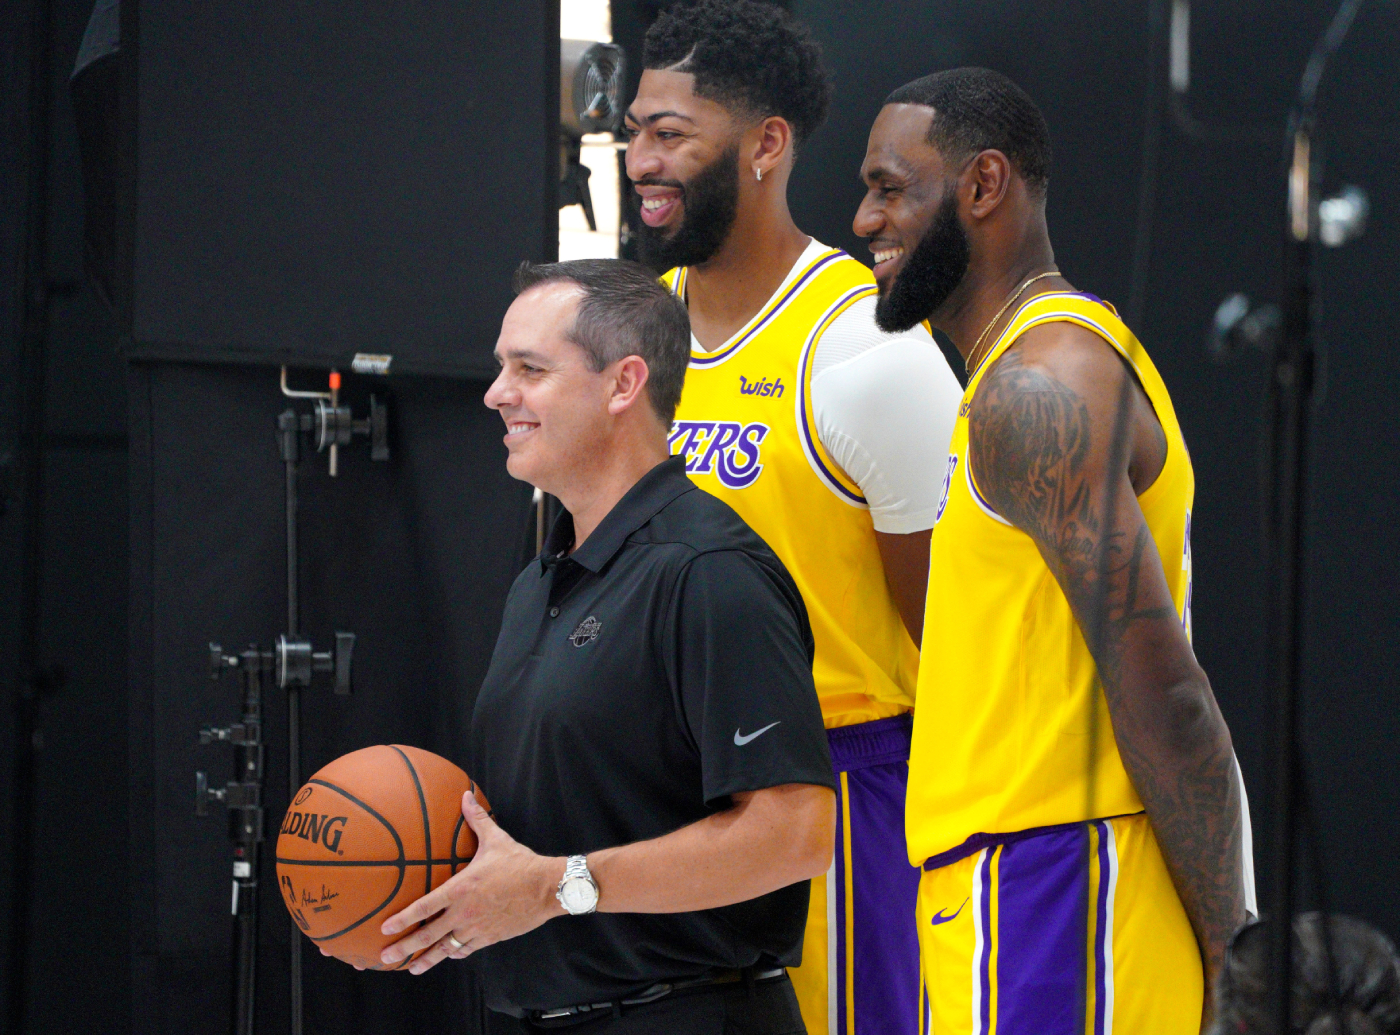 LeBron James has played under several coaches in the NBA on the Cavaliers, Heat, and Lakers. So, who was his first NBA coach?